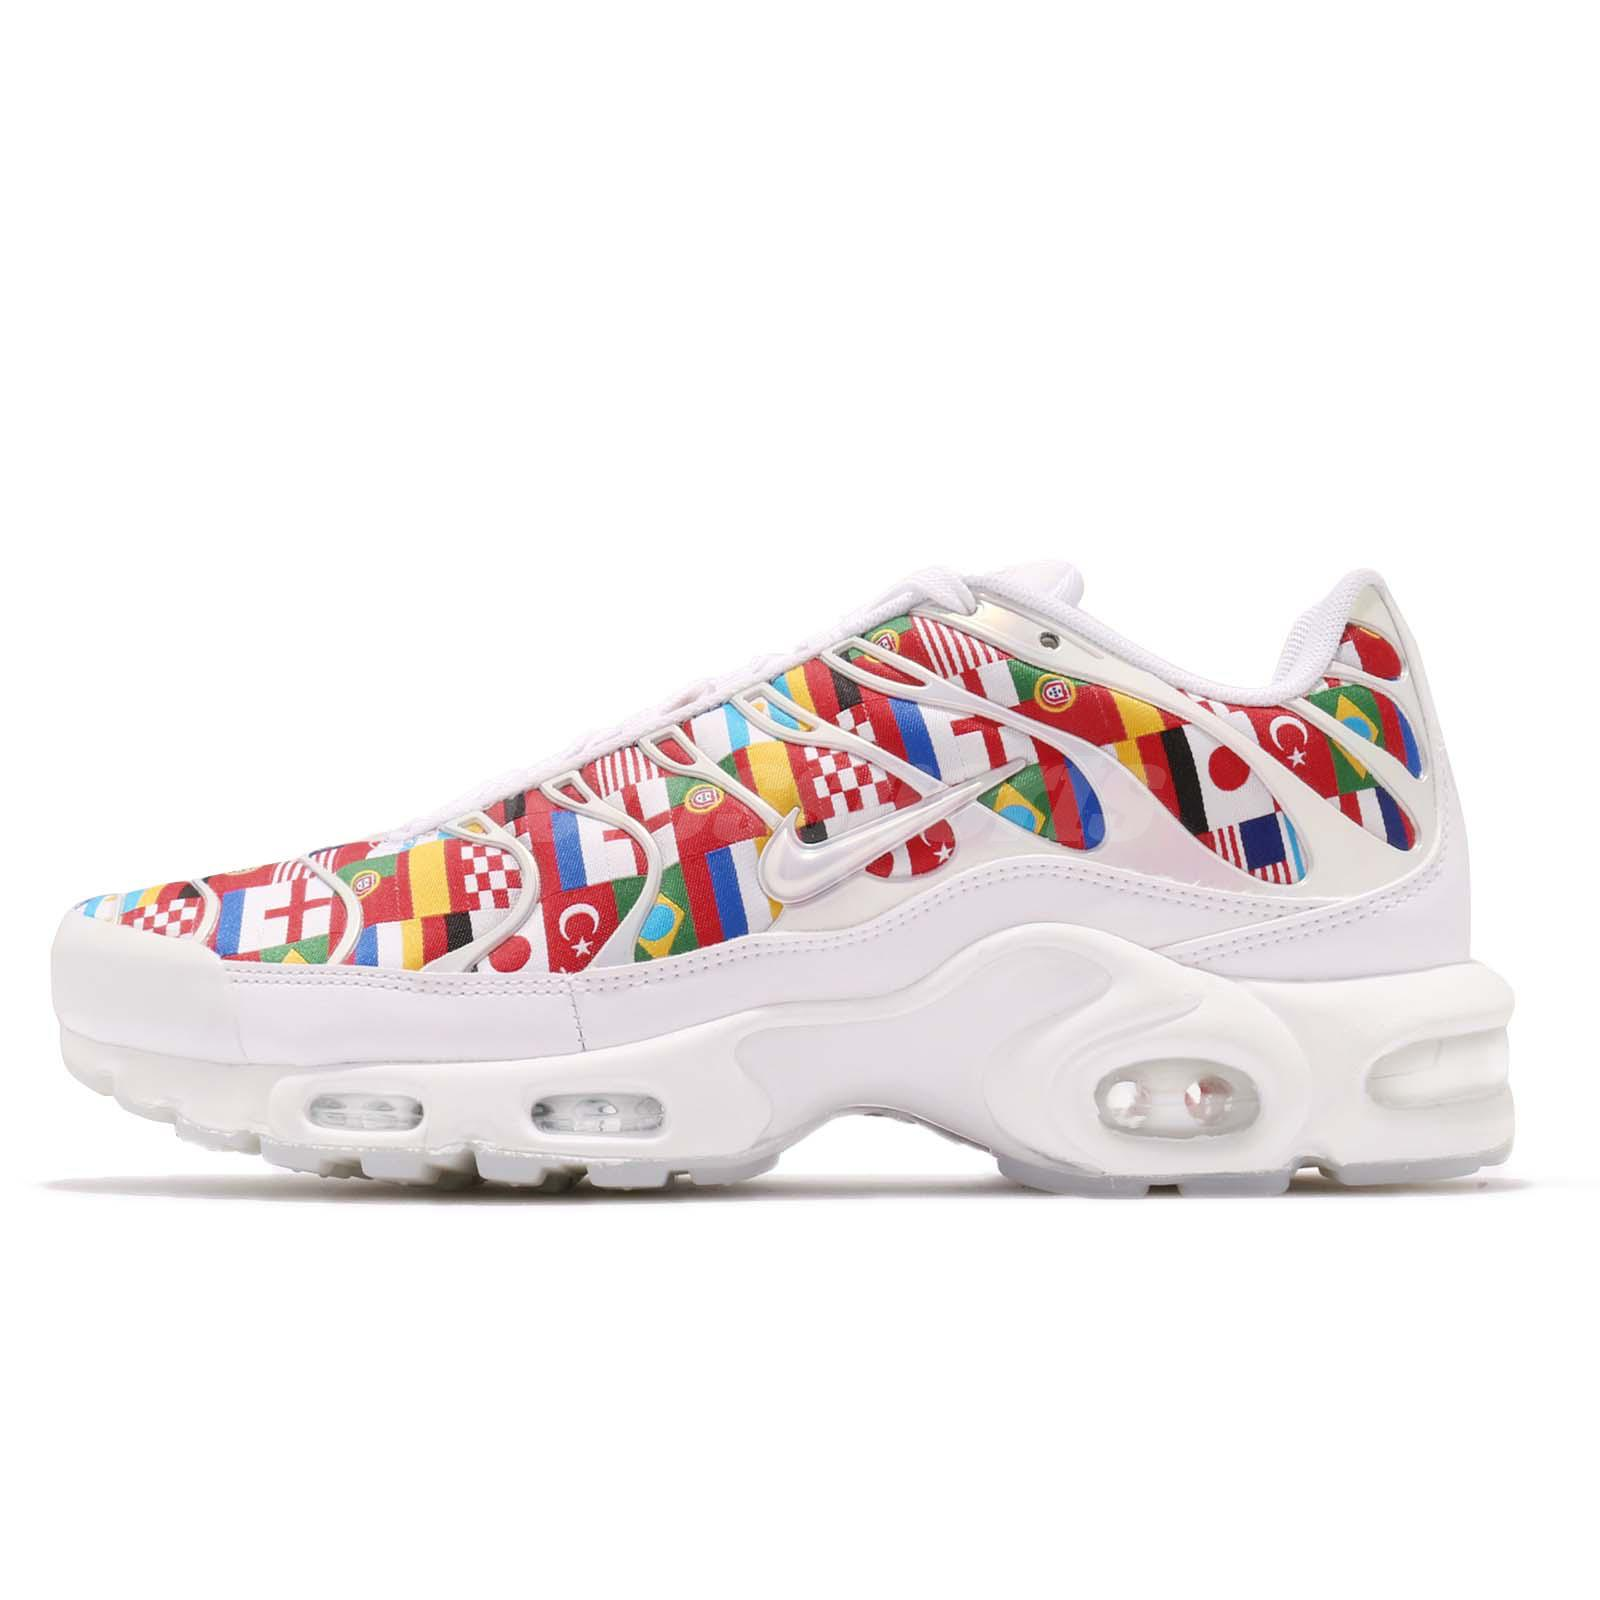 Nike Air Max Plus NIC FIFA World Cup International Flag Pack Sneakers  AO5117-100 cf17d64d83f8